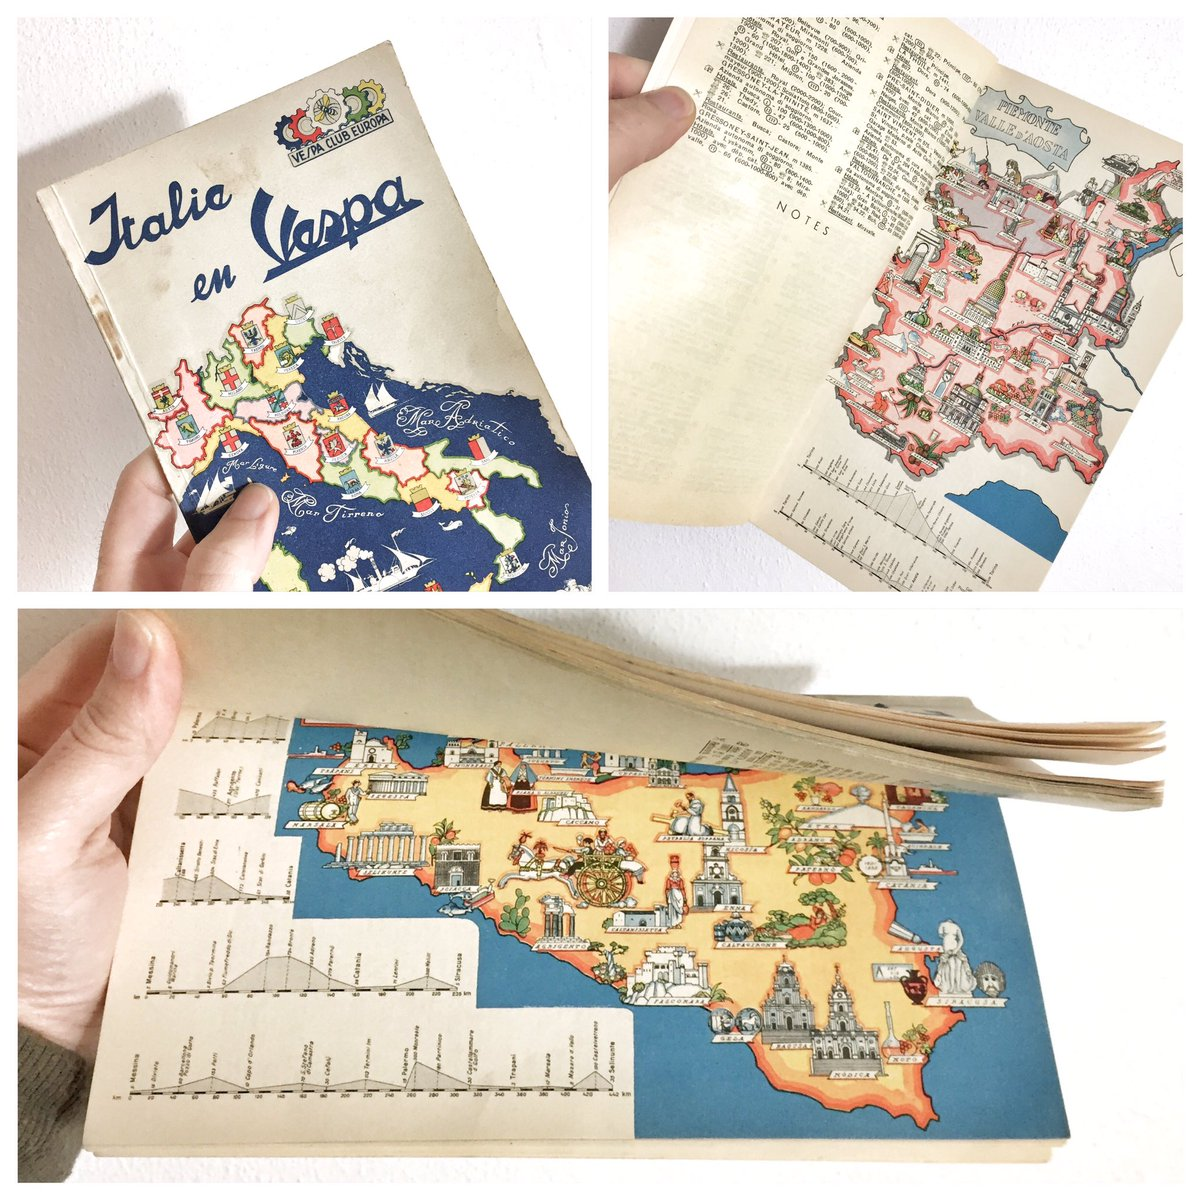 1957 #beautiful guide to #travel in #italy with your #Vespa! #piaggio #vintage #cartography #italia #mapping #maps #travelblogger<br>http://pic.twitter.com/L6RtFY7IV0